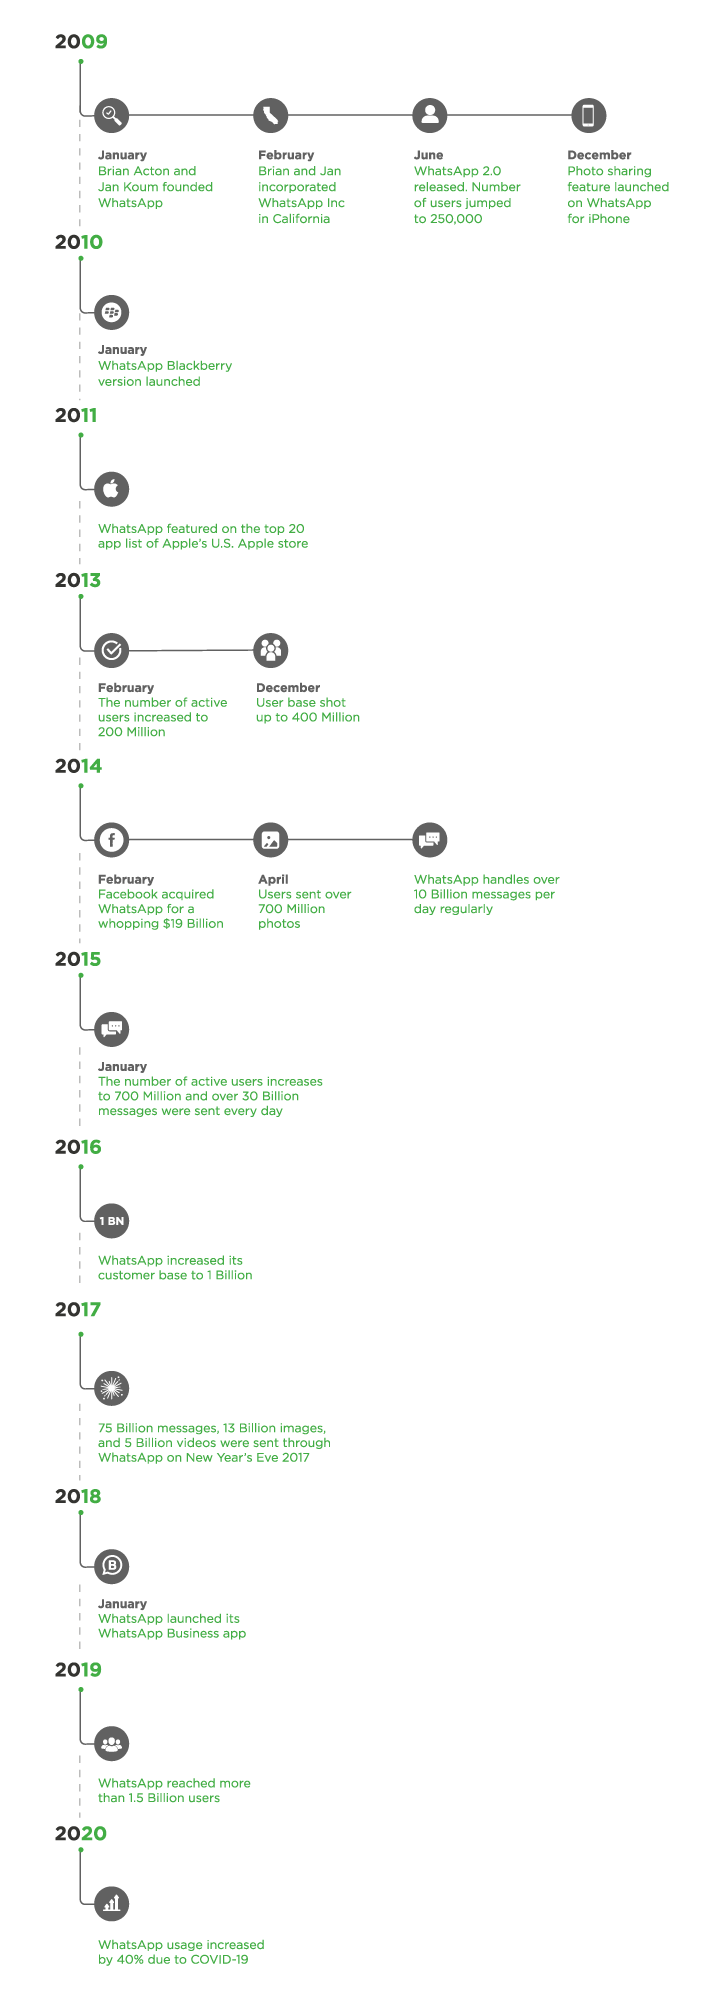 Infographic-Whatsapp-Timeline-Acquisition-by-facebook-founded-journey-whatsapp-business-api